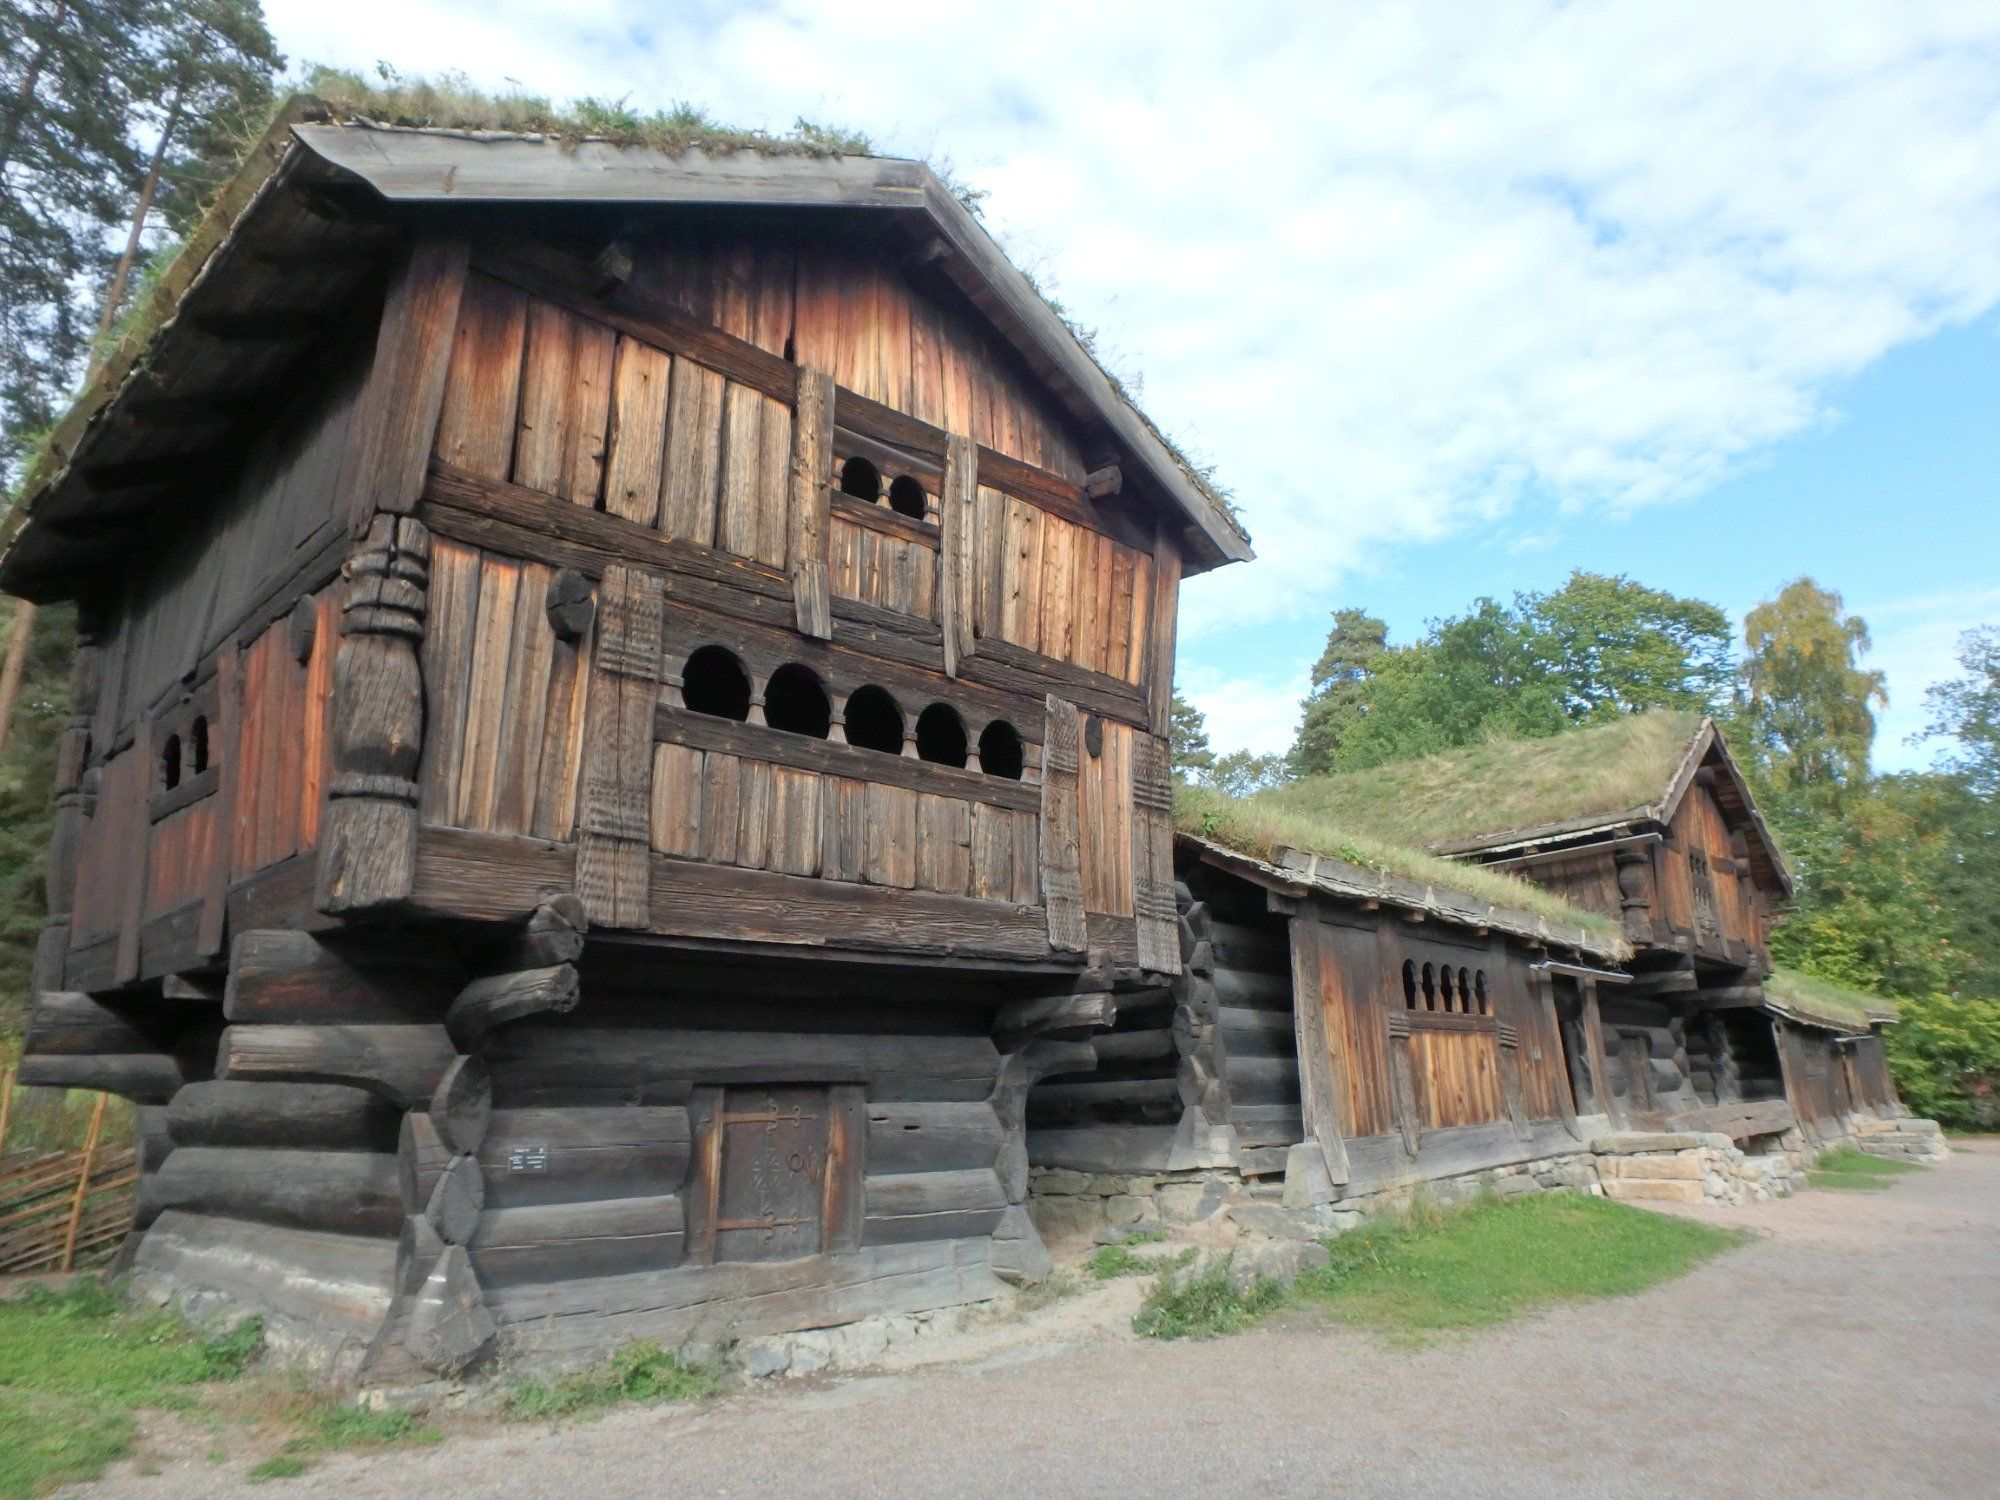 Book your tickets online for The Norwegian Museum of Cultural History, Oslo: See 2,226 reviews, articles, and 1,559 photos of The Norwegian Museum of Cultural History, ranked No.5 on TripAdvisor among 386 attractions in Oslo.